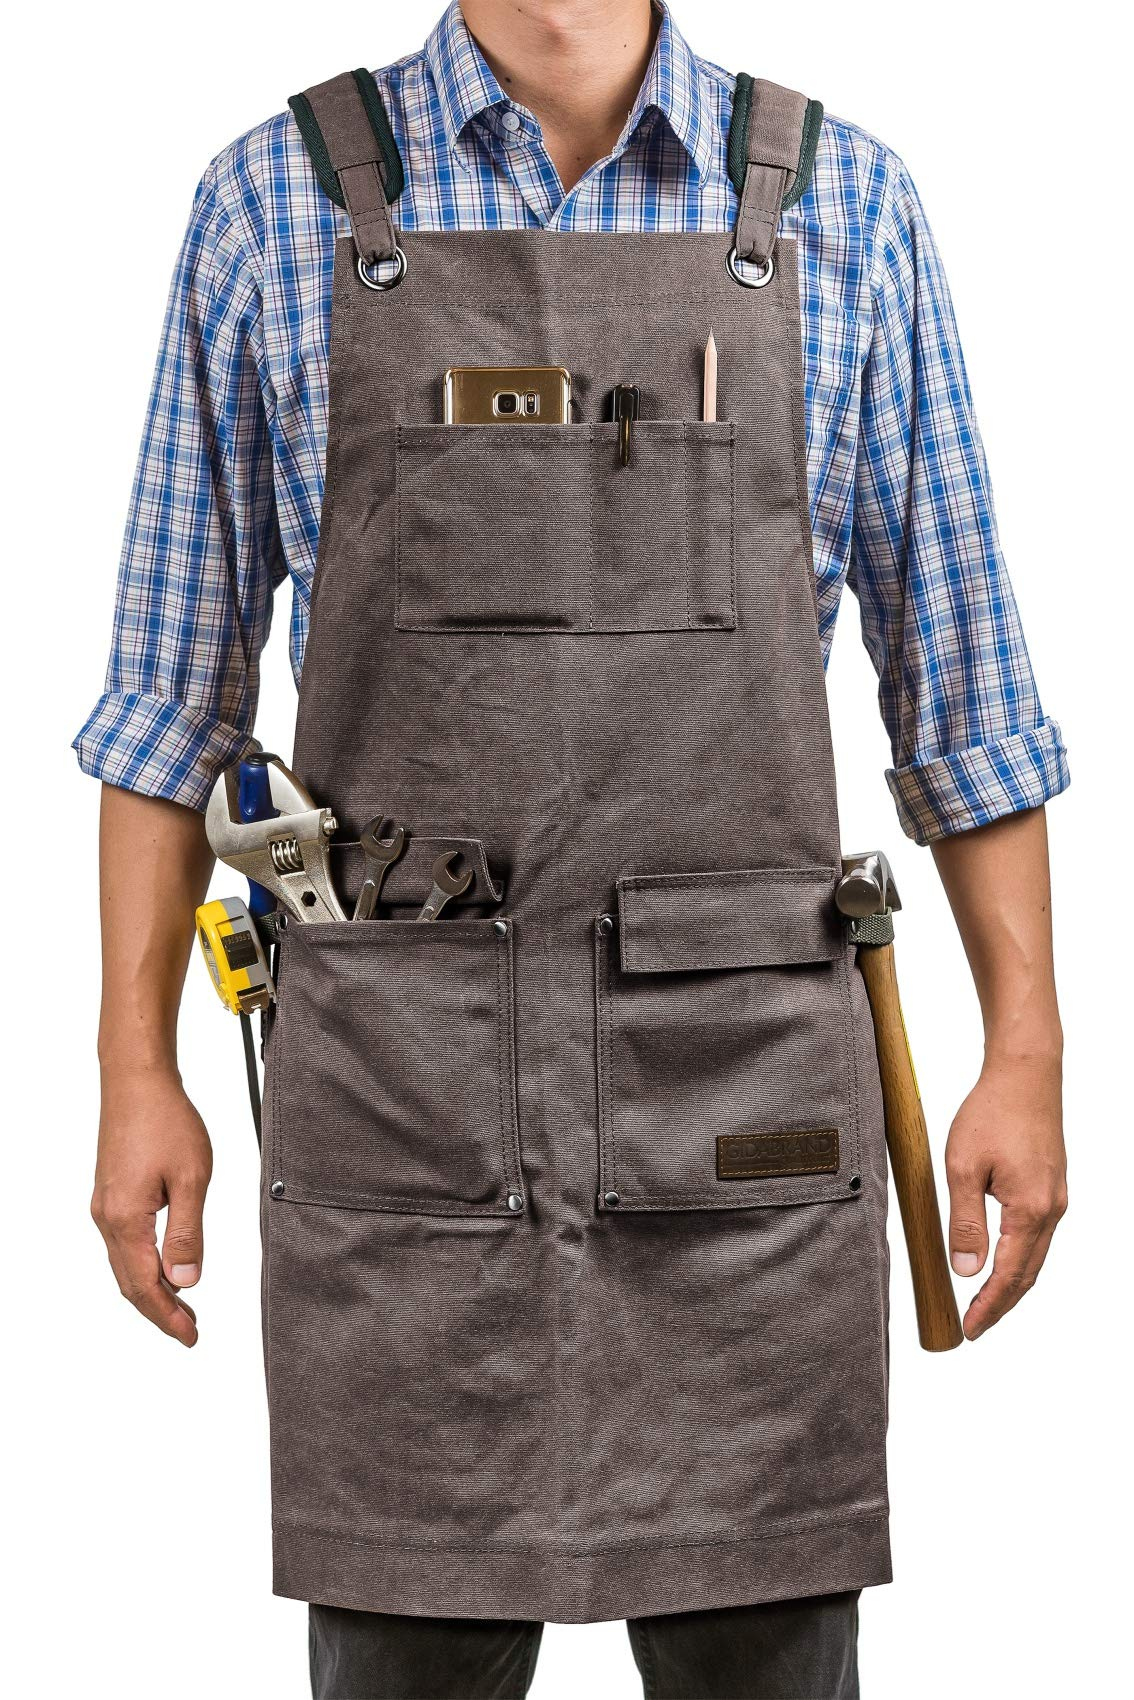 Luxury Waxed Canvas Shop Apron | Heavy Duty Work Apron for Men & Women with Pocket & Cross-Back Straps | Adjustable Tool Apron Up To XXL | Long, Thick, Water Resistant Workshop Apron in Gift Box